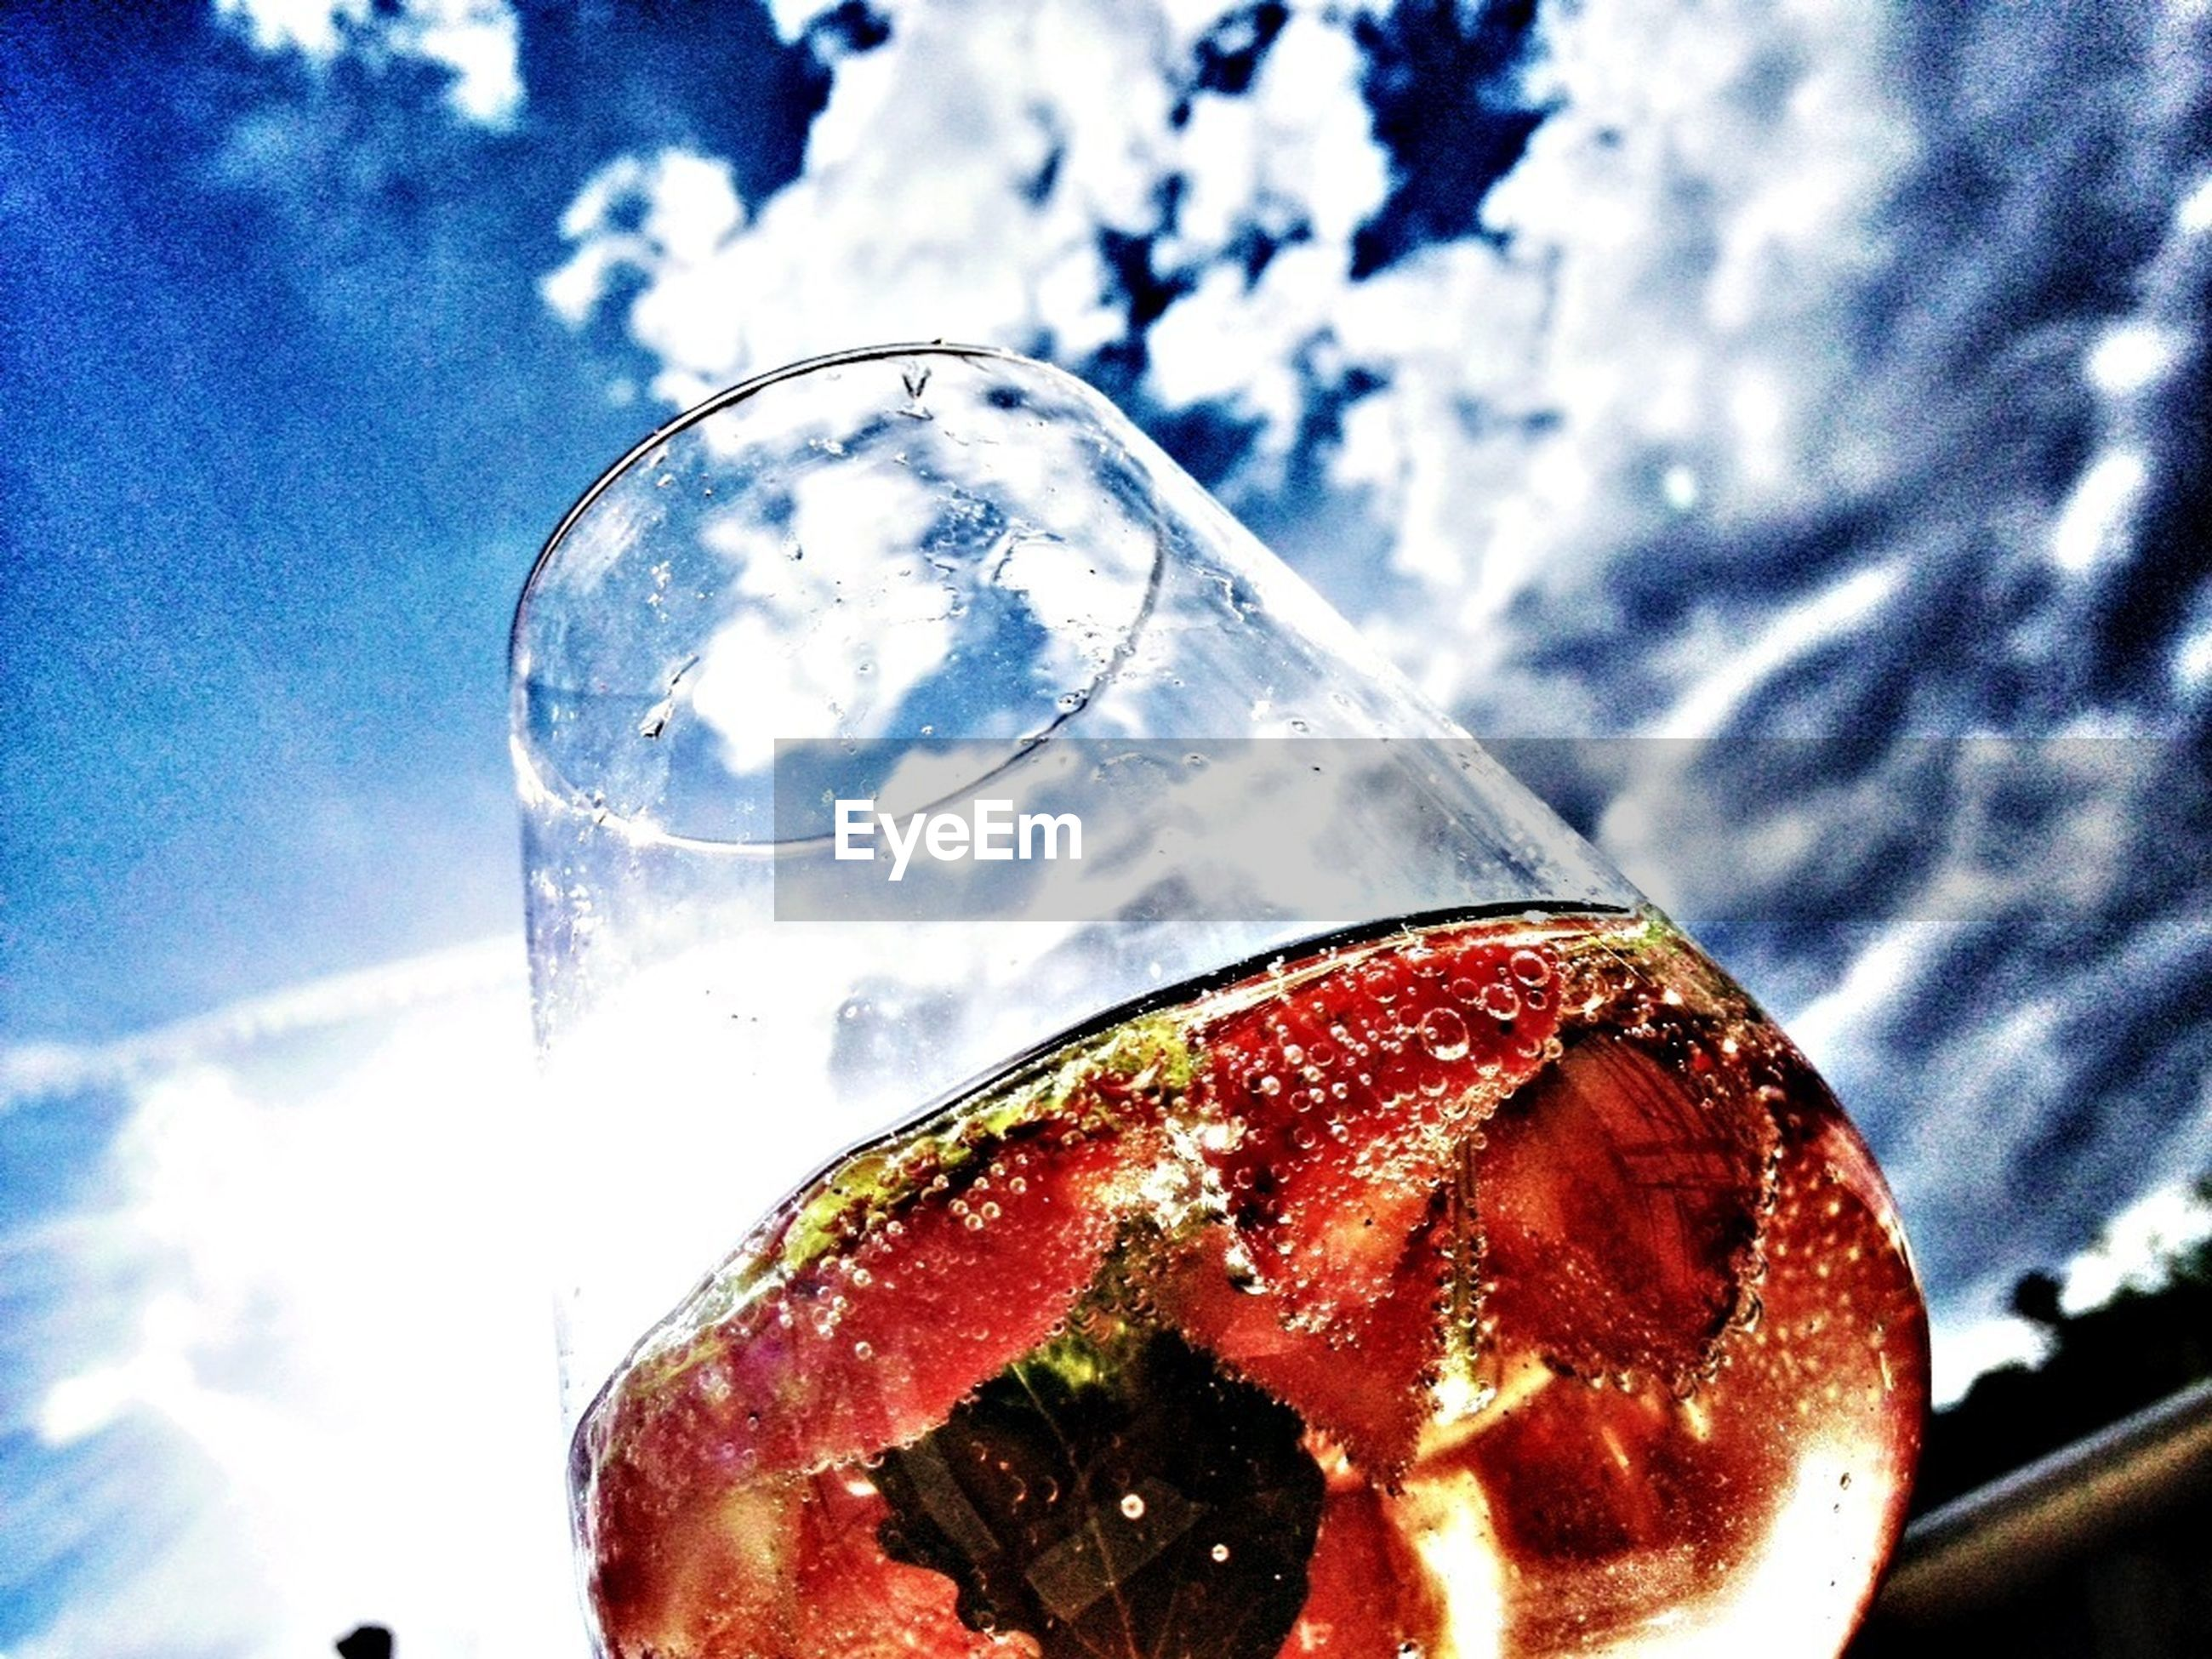 food and drink, glass - material, freshness, refreshment, sky, drink, transparent, food, drinking glass, indoors, close-up, ready-to-eat, sweet food, indulgence, cloud - sky, still life, glass, table, dessert, unhealthy eating